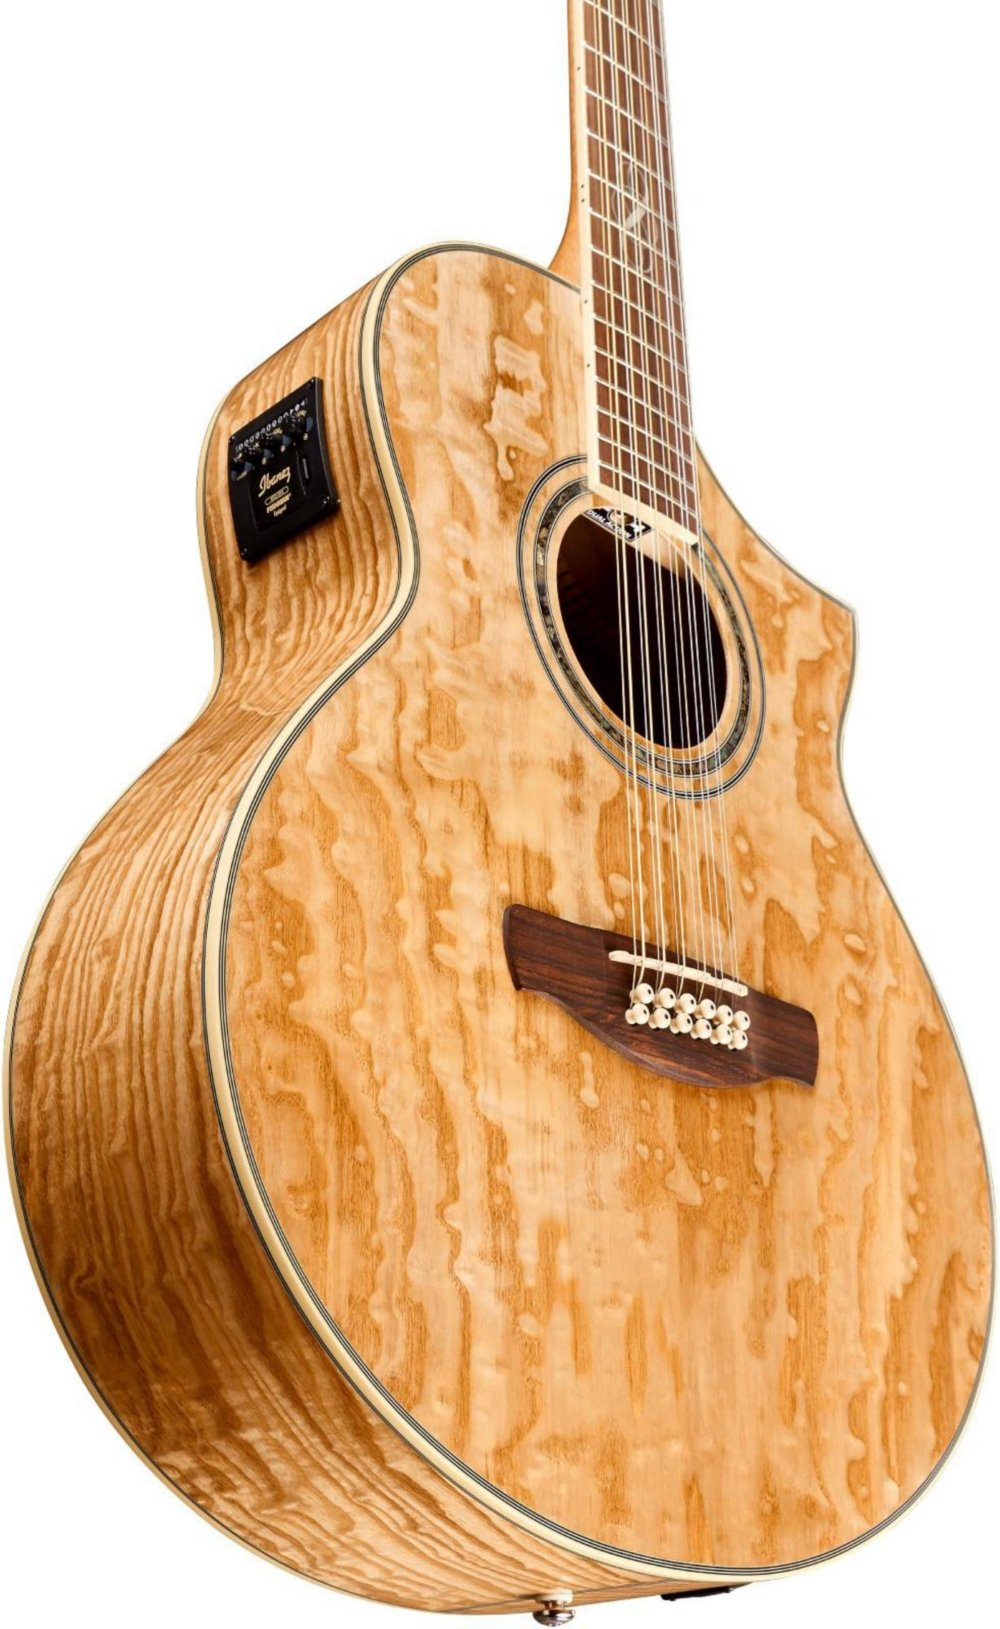 ibanez exotic wood series ew2012asent 12 string acoustic electric guitar guitar affinity. Black Bedroom Furniture Sets. Home Design Ideas